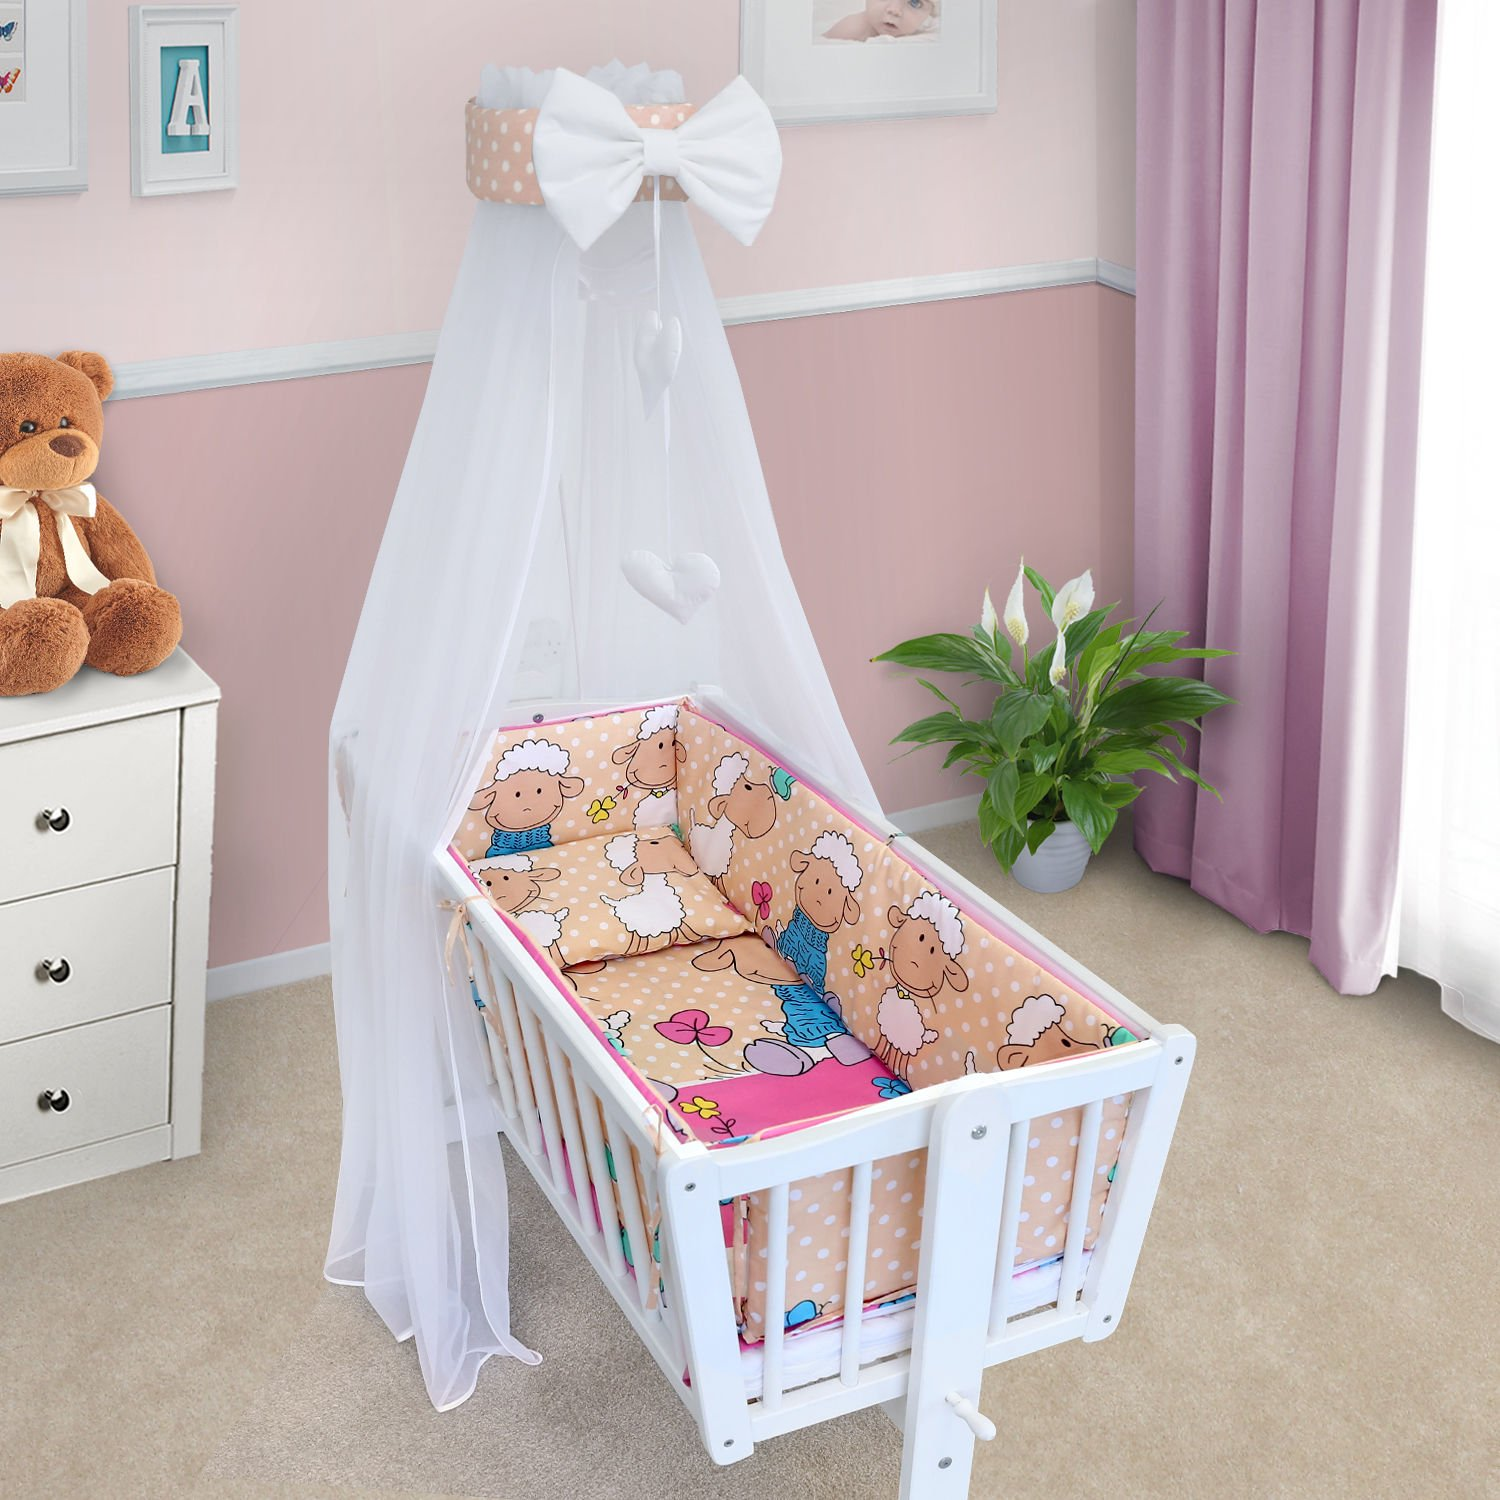 BABY CANOPY DRAPE MOSQUITO NET WITH HOLDER TO FIT CRIB (ELEPHANTS GREY) Babymam